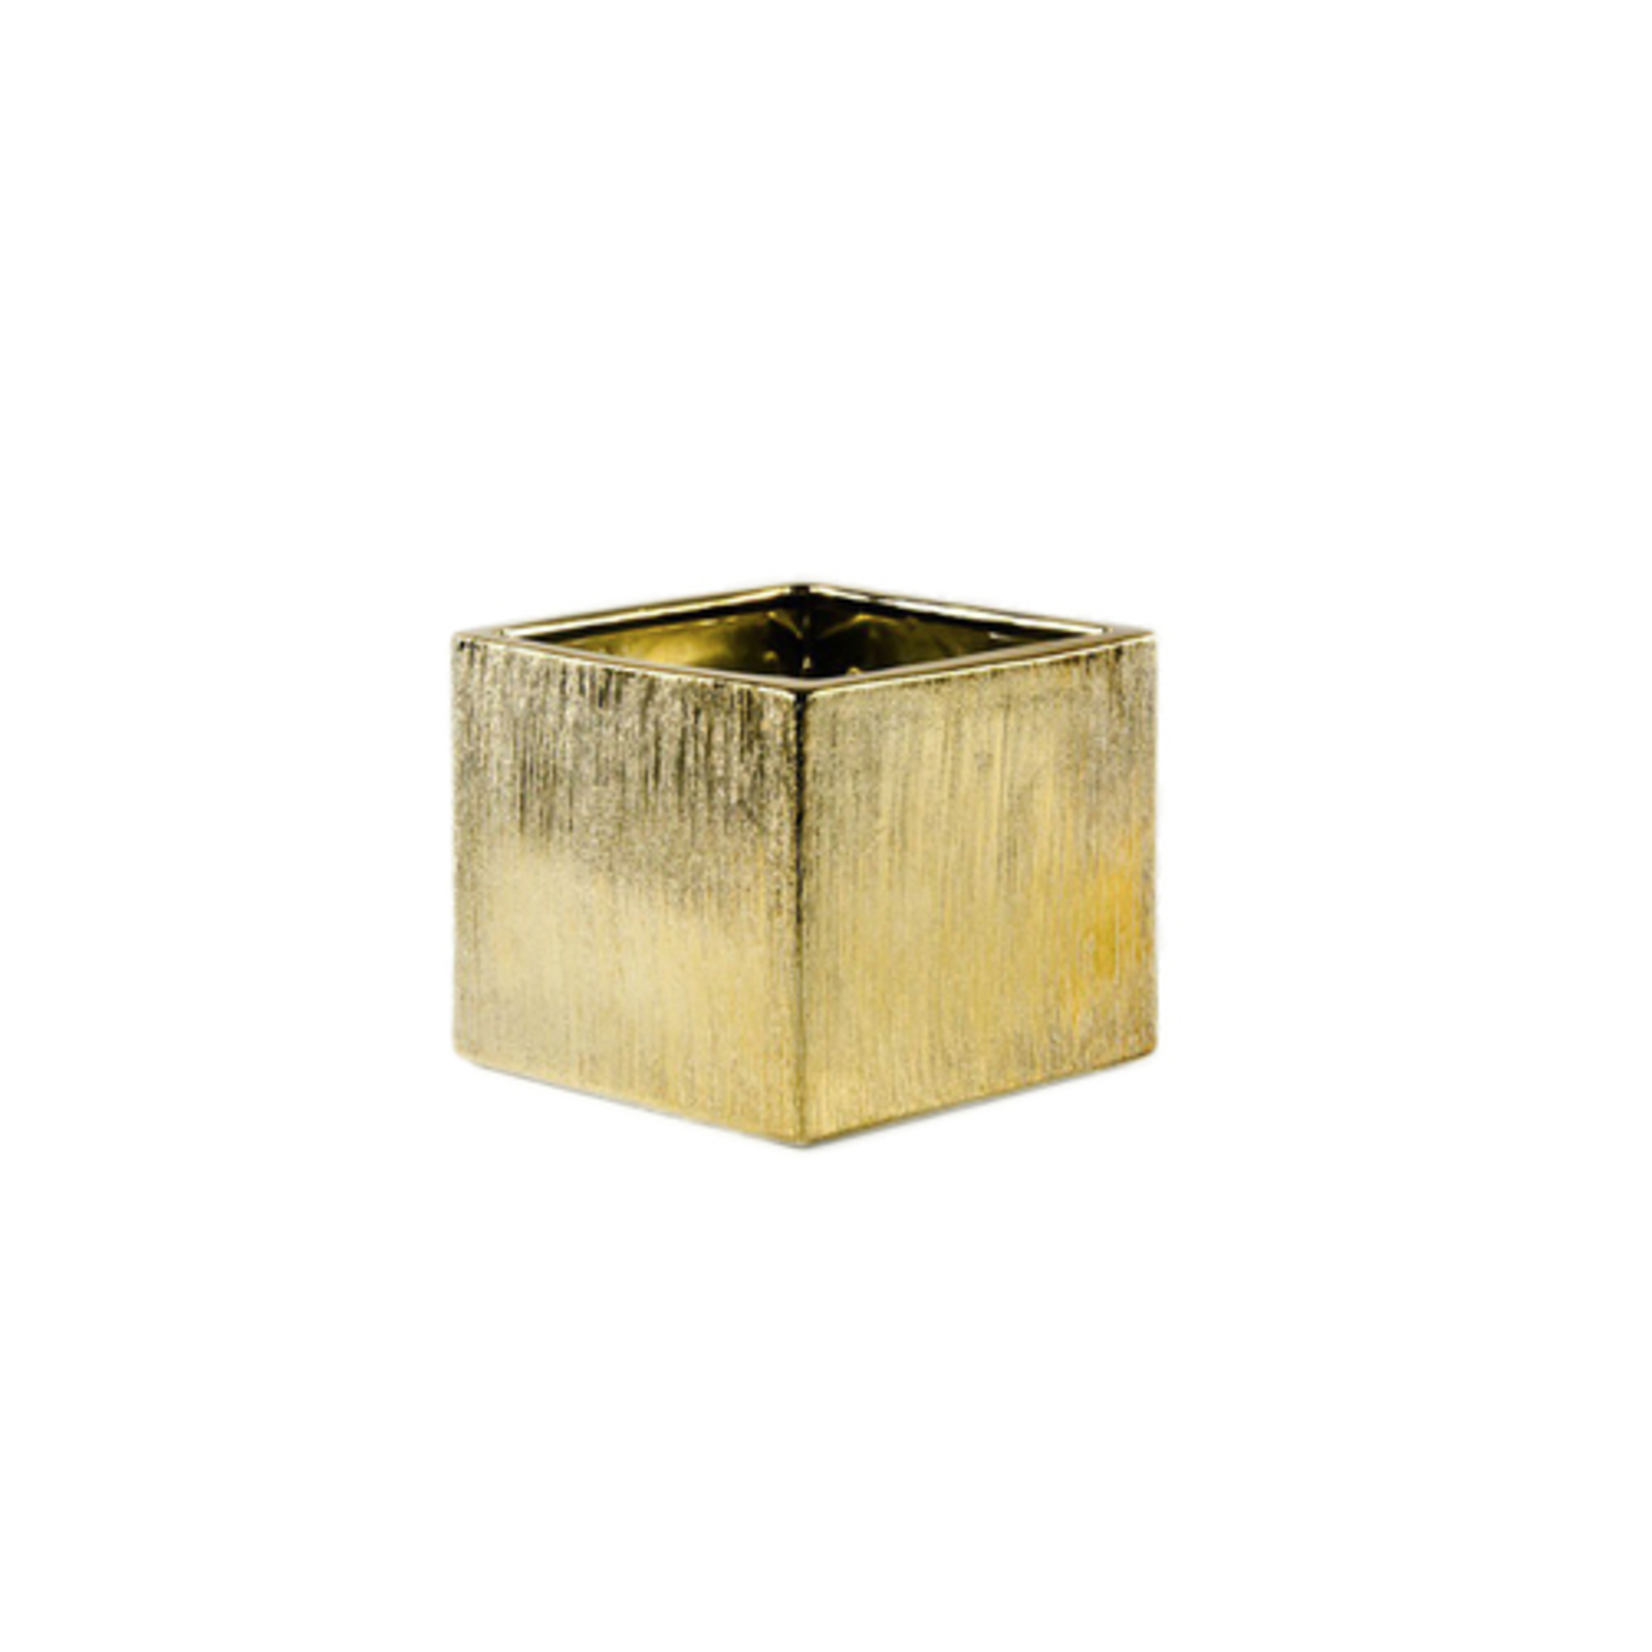 """3.75"""" x 3.75"""" x 3.75"""" GOLD ETCHED CUBE"""